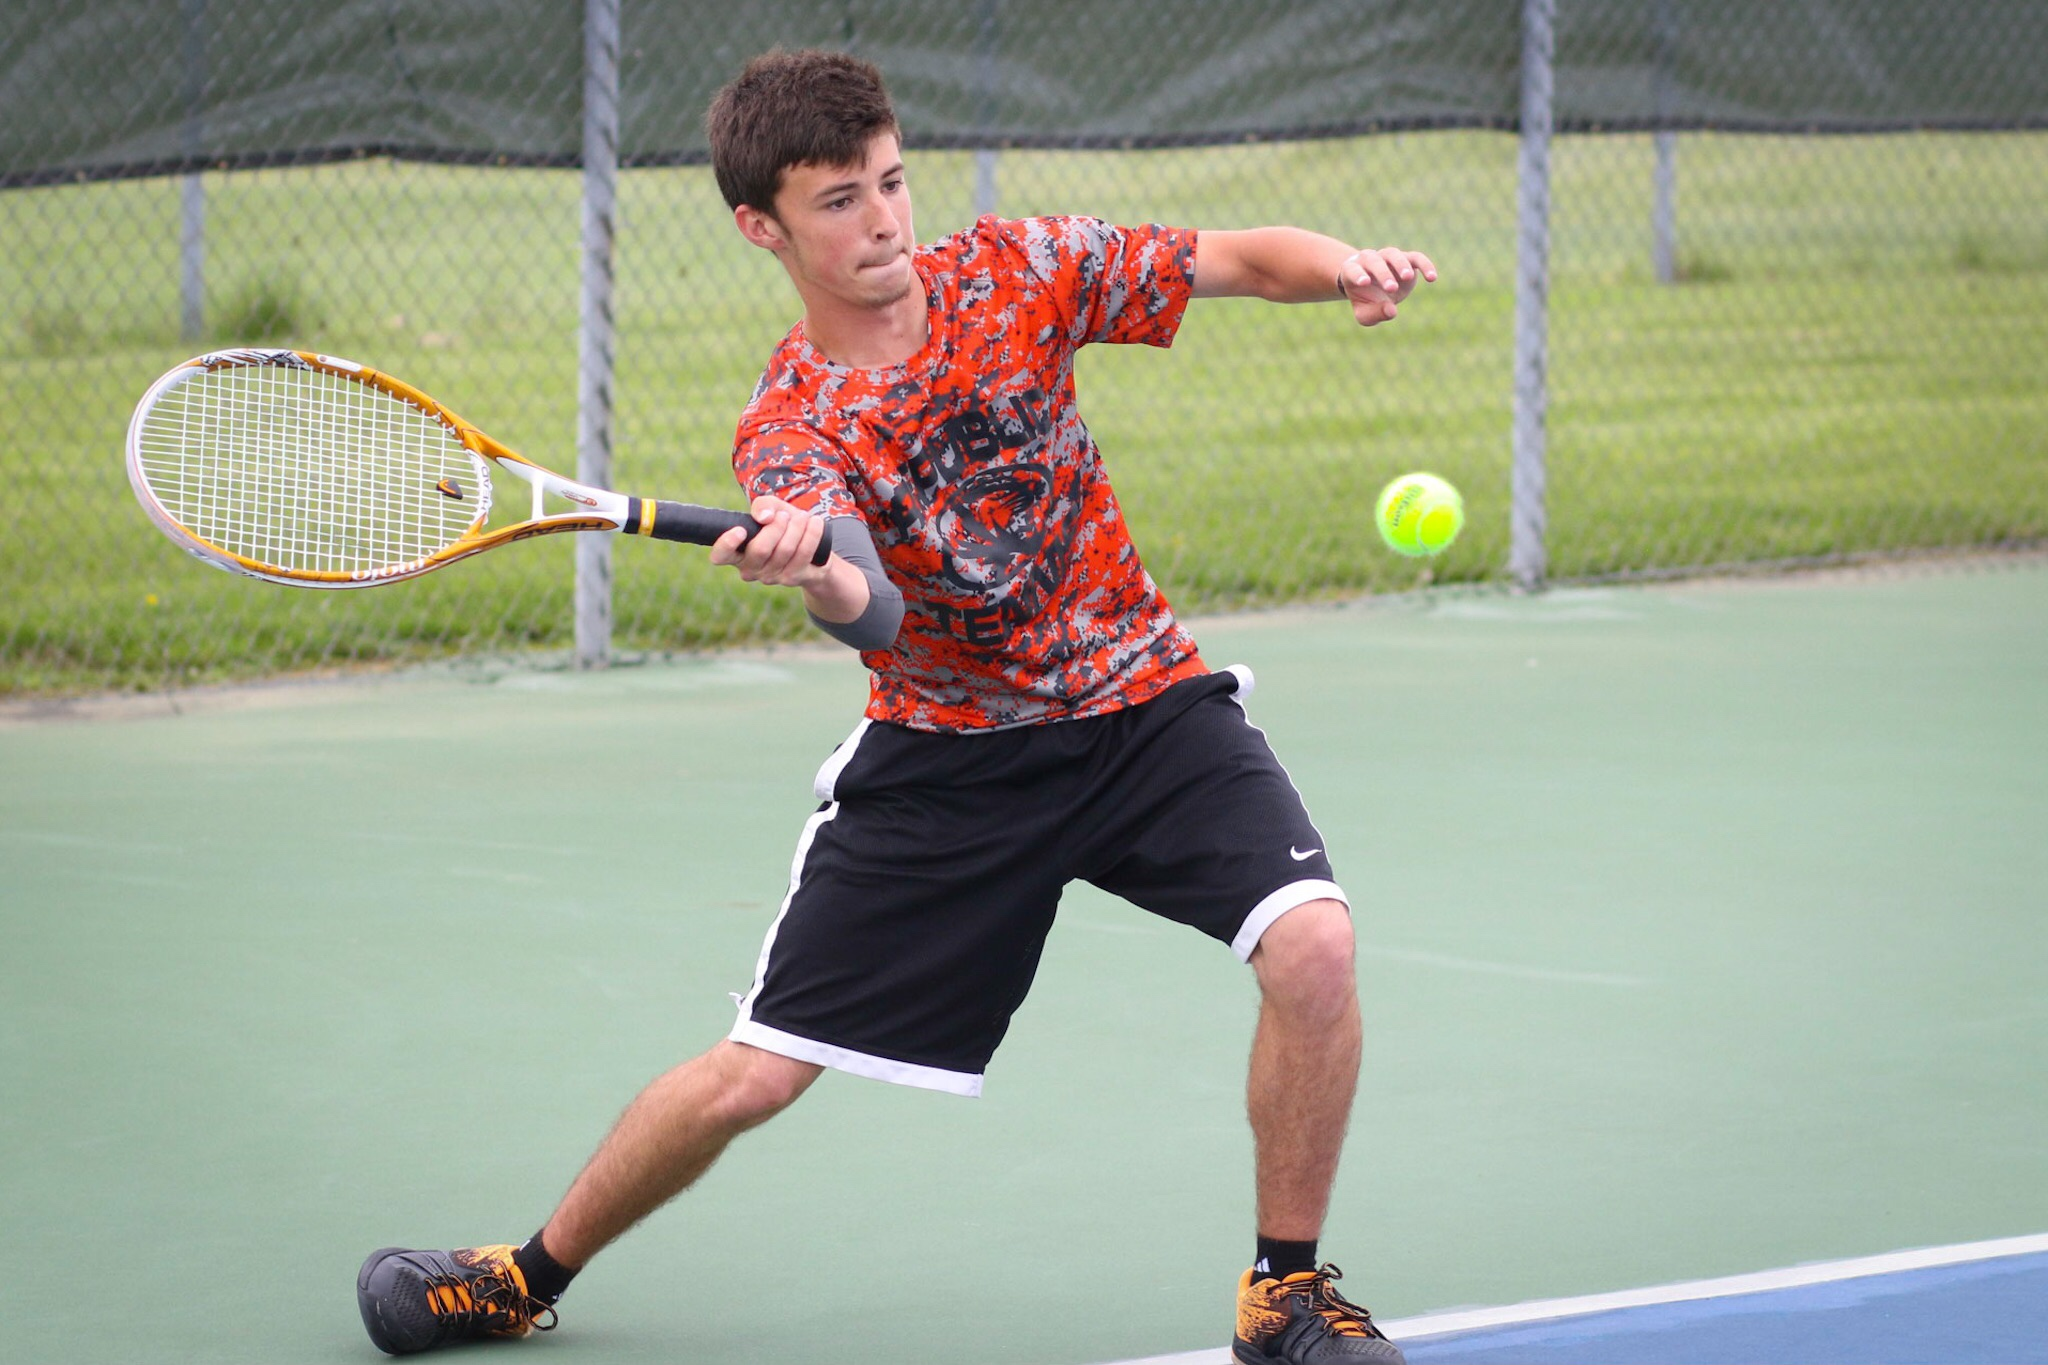 Photos: Boys Tennis Vs Glendale